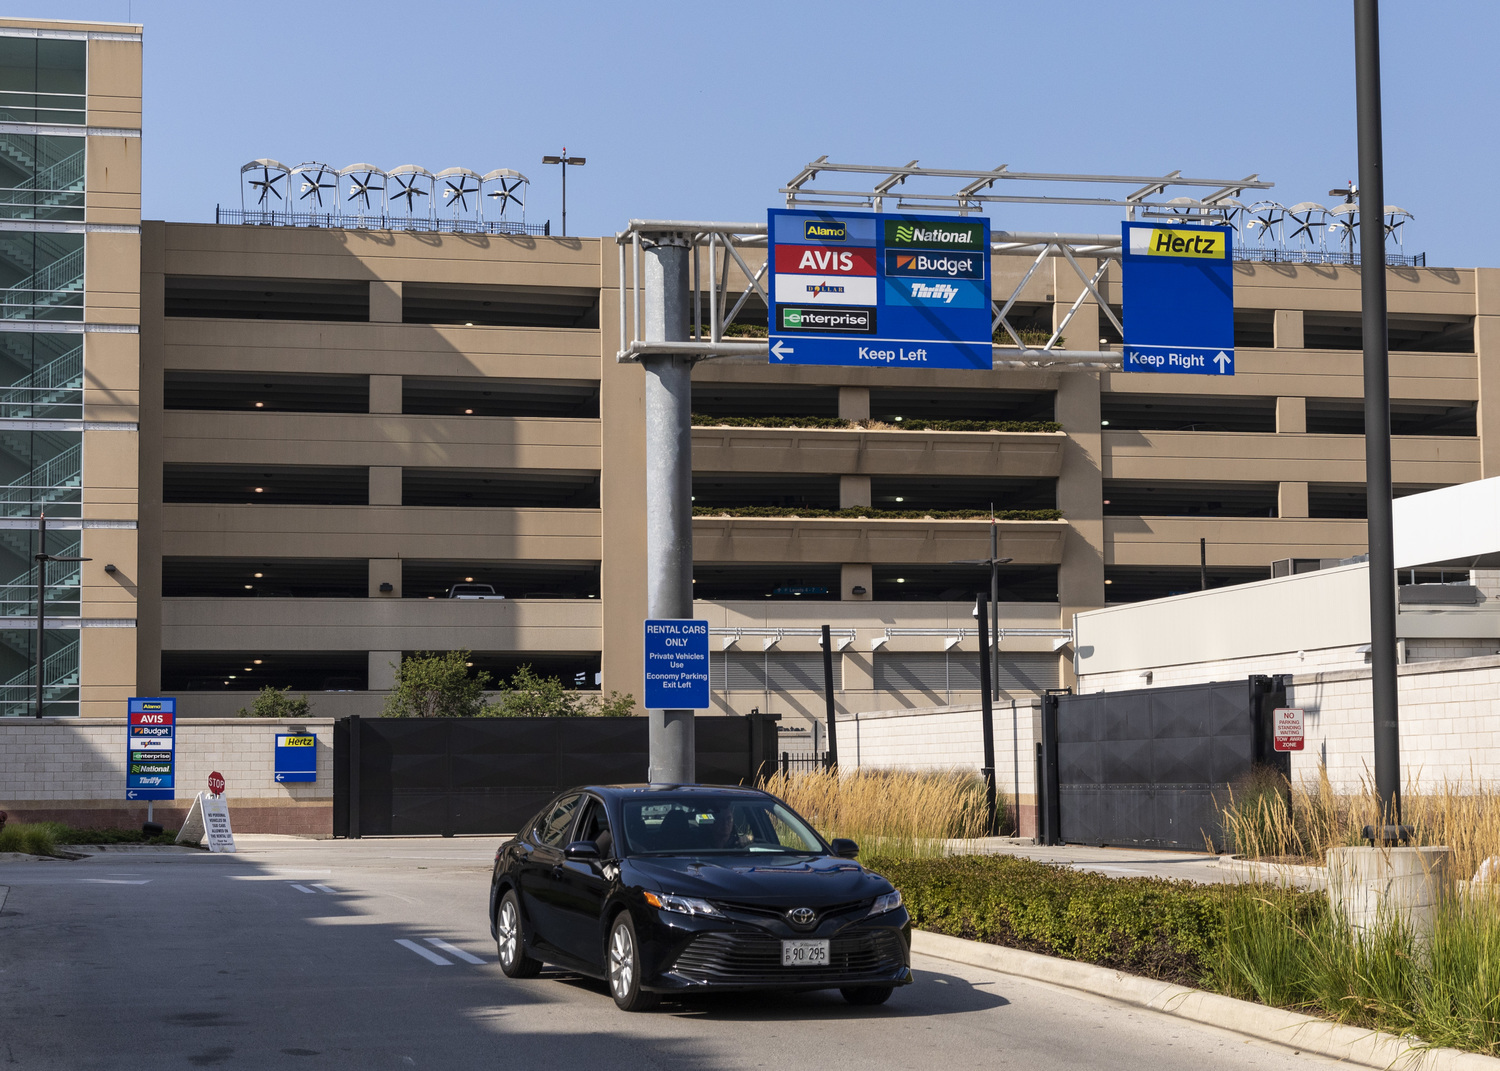 The Midway Airport rental car facility, 5150 W. 55th St.